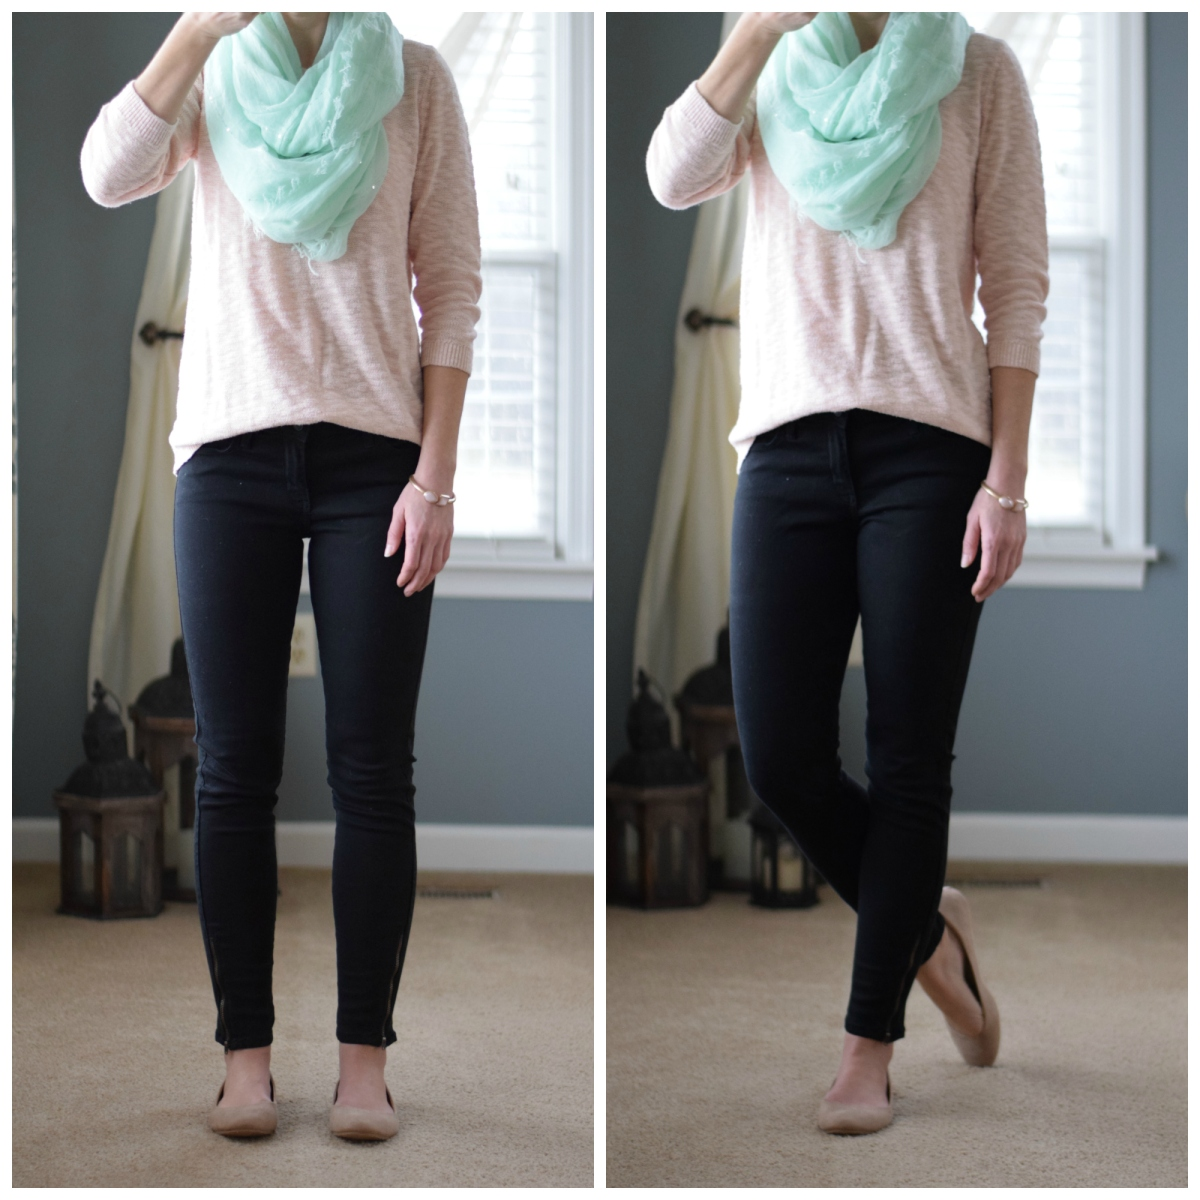 Break into spring slowly wih pops of pastel, like this mint scarf and blush sweater